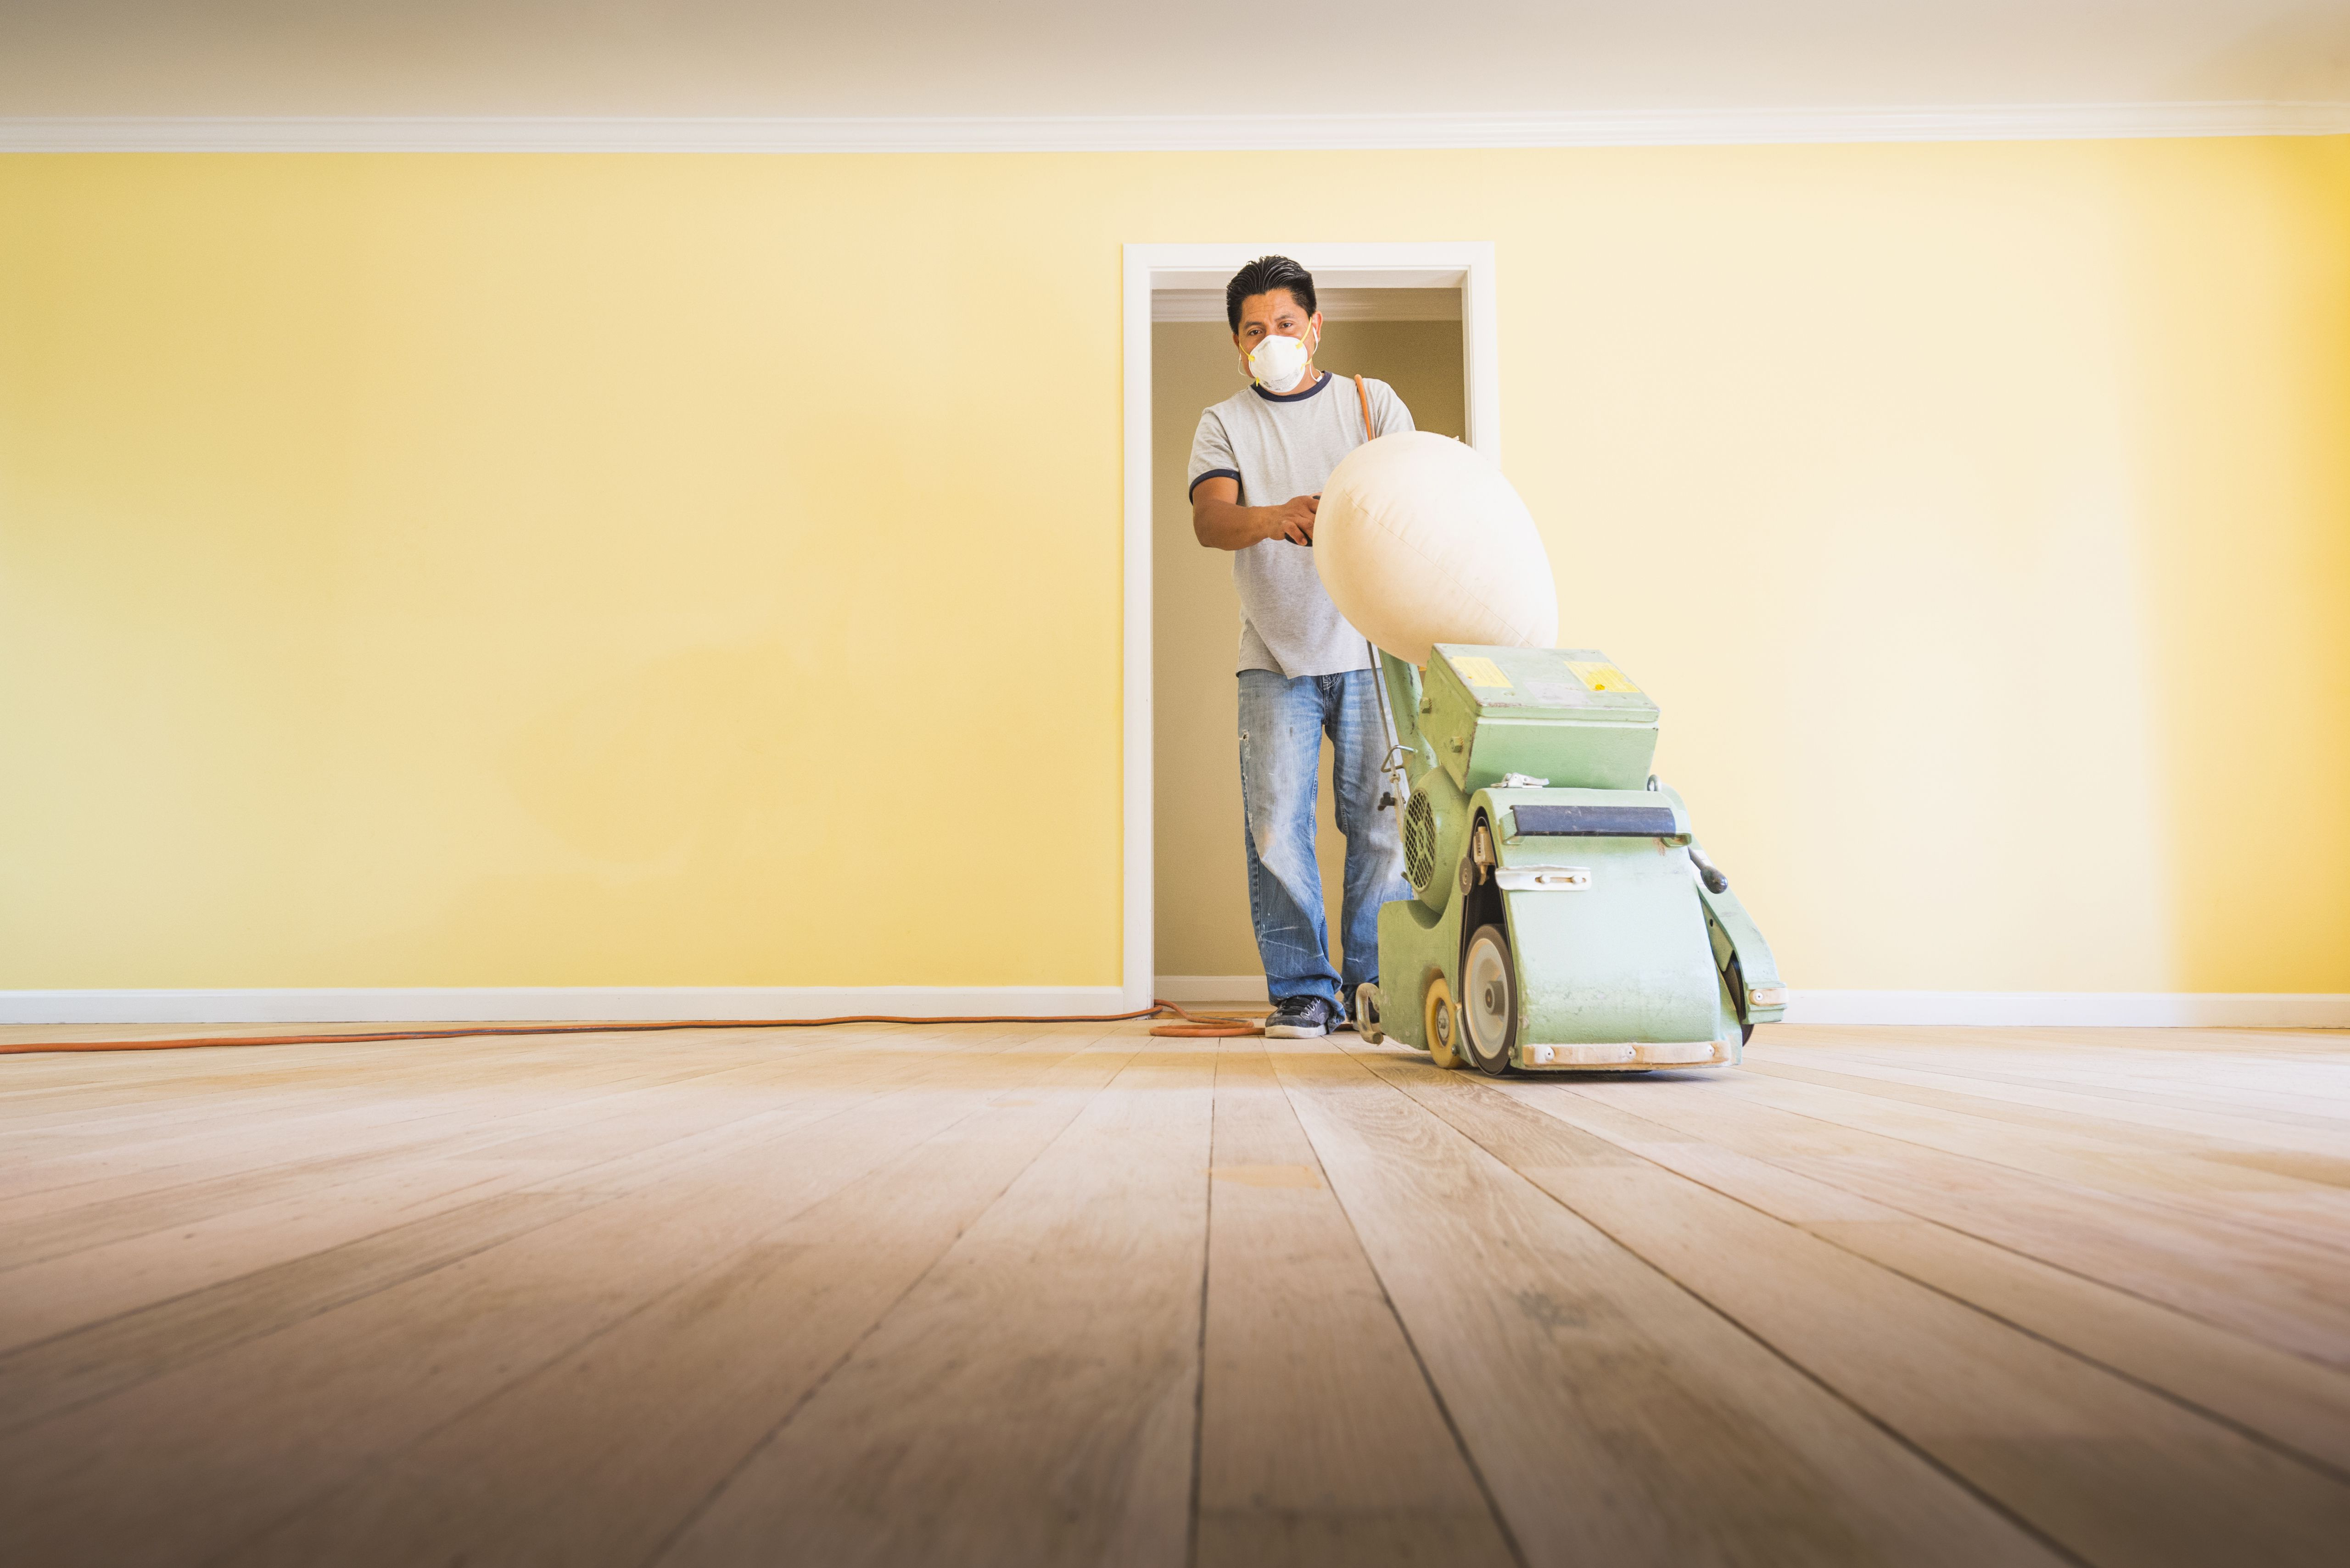 How Much Should It Cost to Refinish Hardwood Floors Of Should You Paint Walls or Refinish Floors First with Floorsandingafterpainting 5a8f08dfae9ab80037d9d878